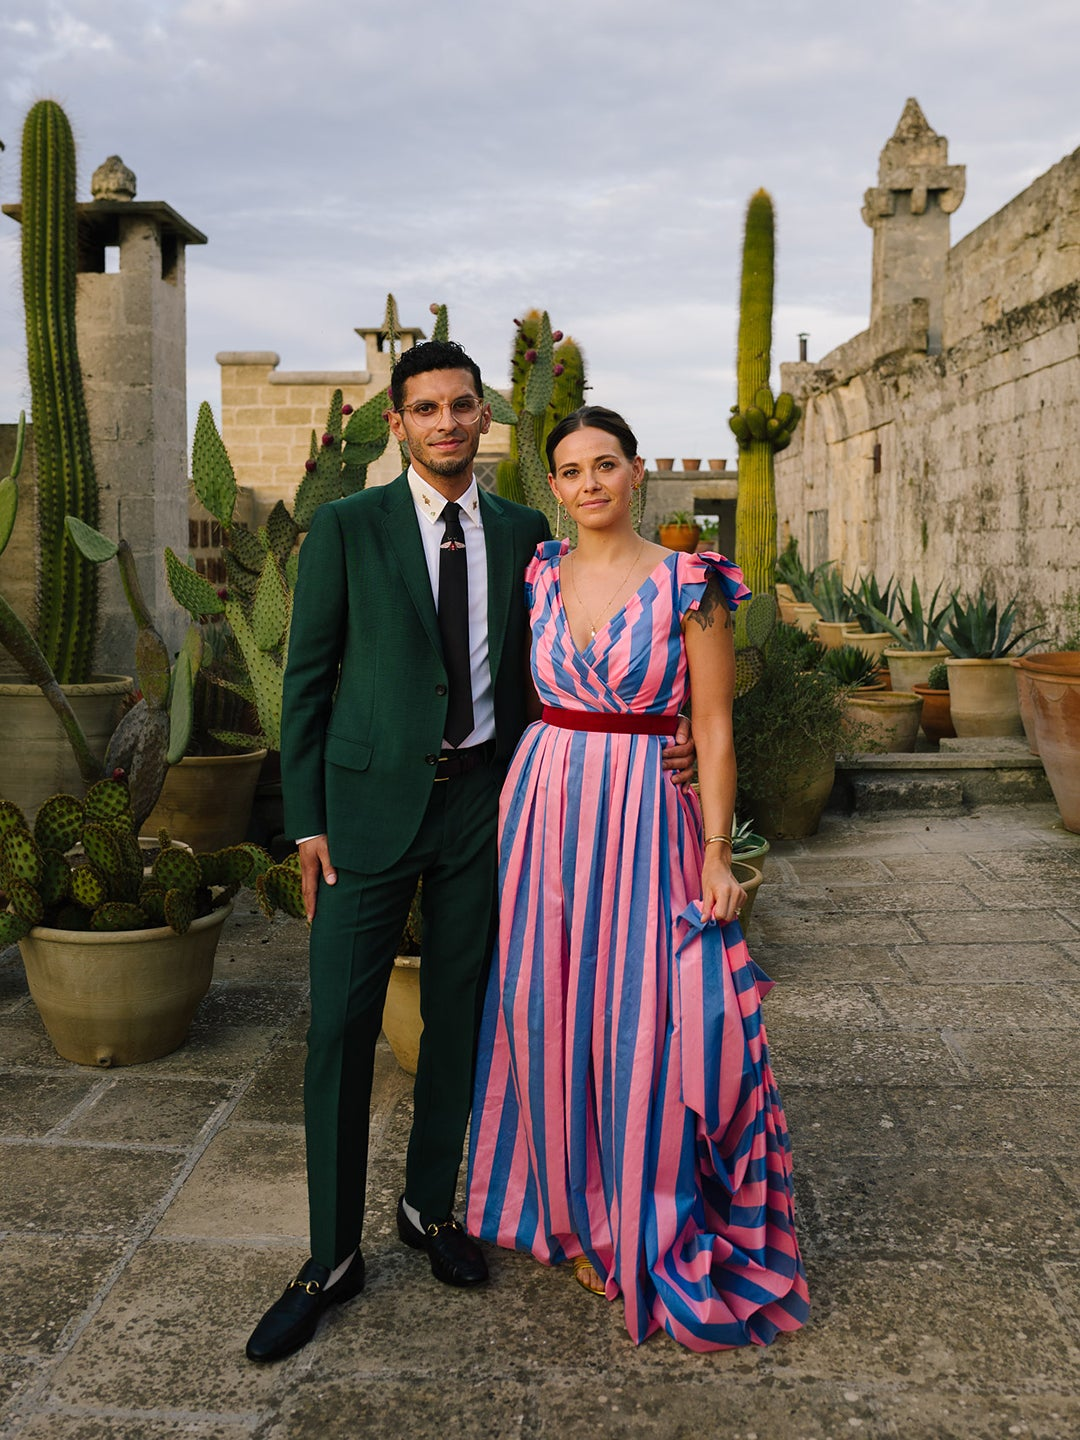 bride in pink and blue striped dress and groom in suit